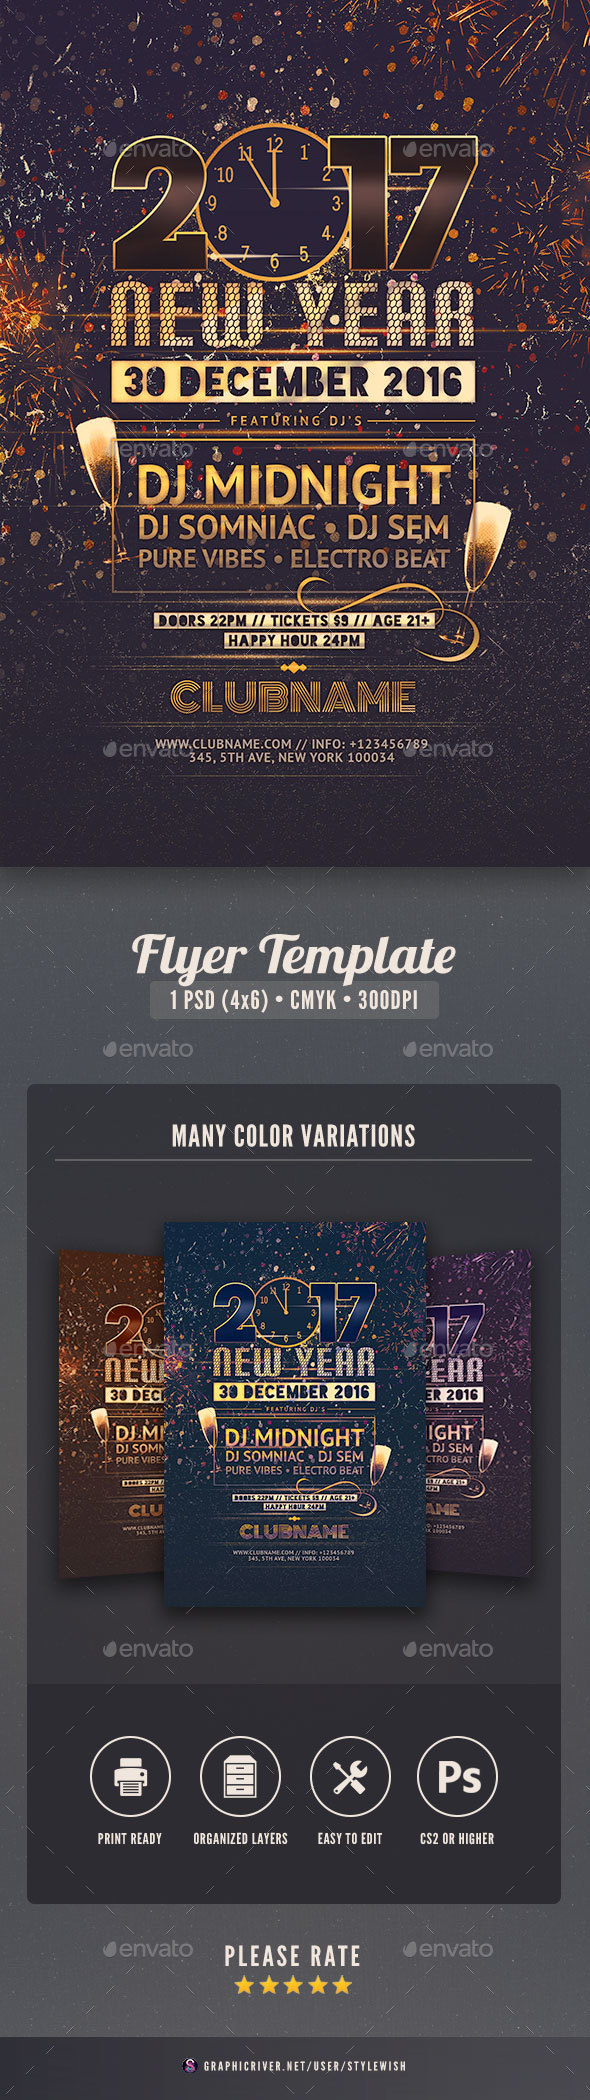 This Flyer Template Is Designed To Announce New Year Events. Spectacular  Firework, Vibrant Colors And Bold Type Are Some Of The Elements That  Reflect The